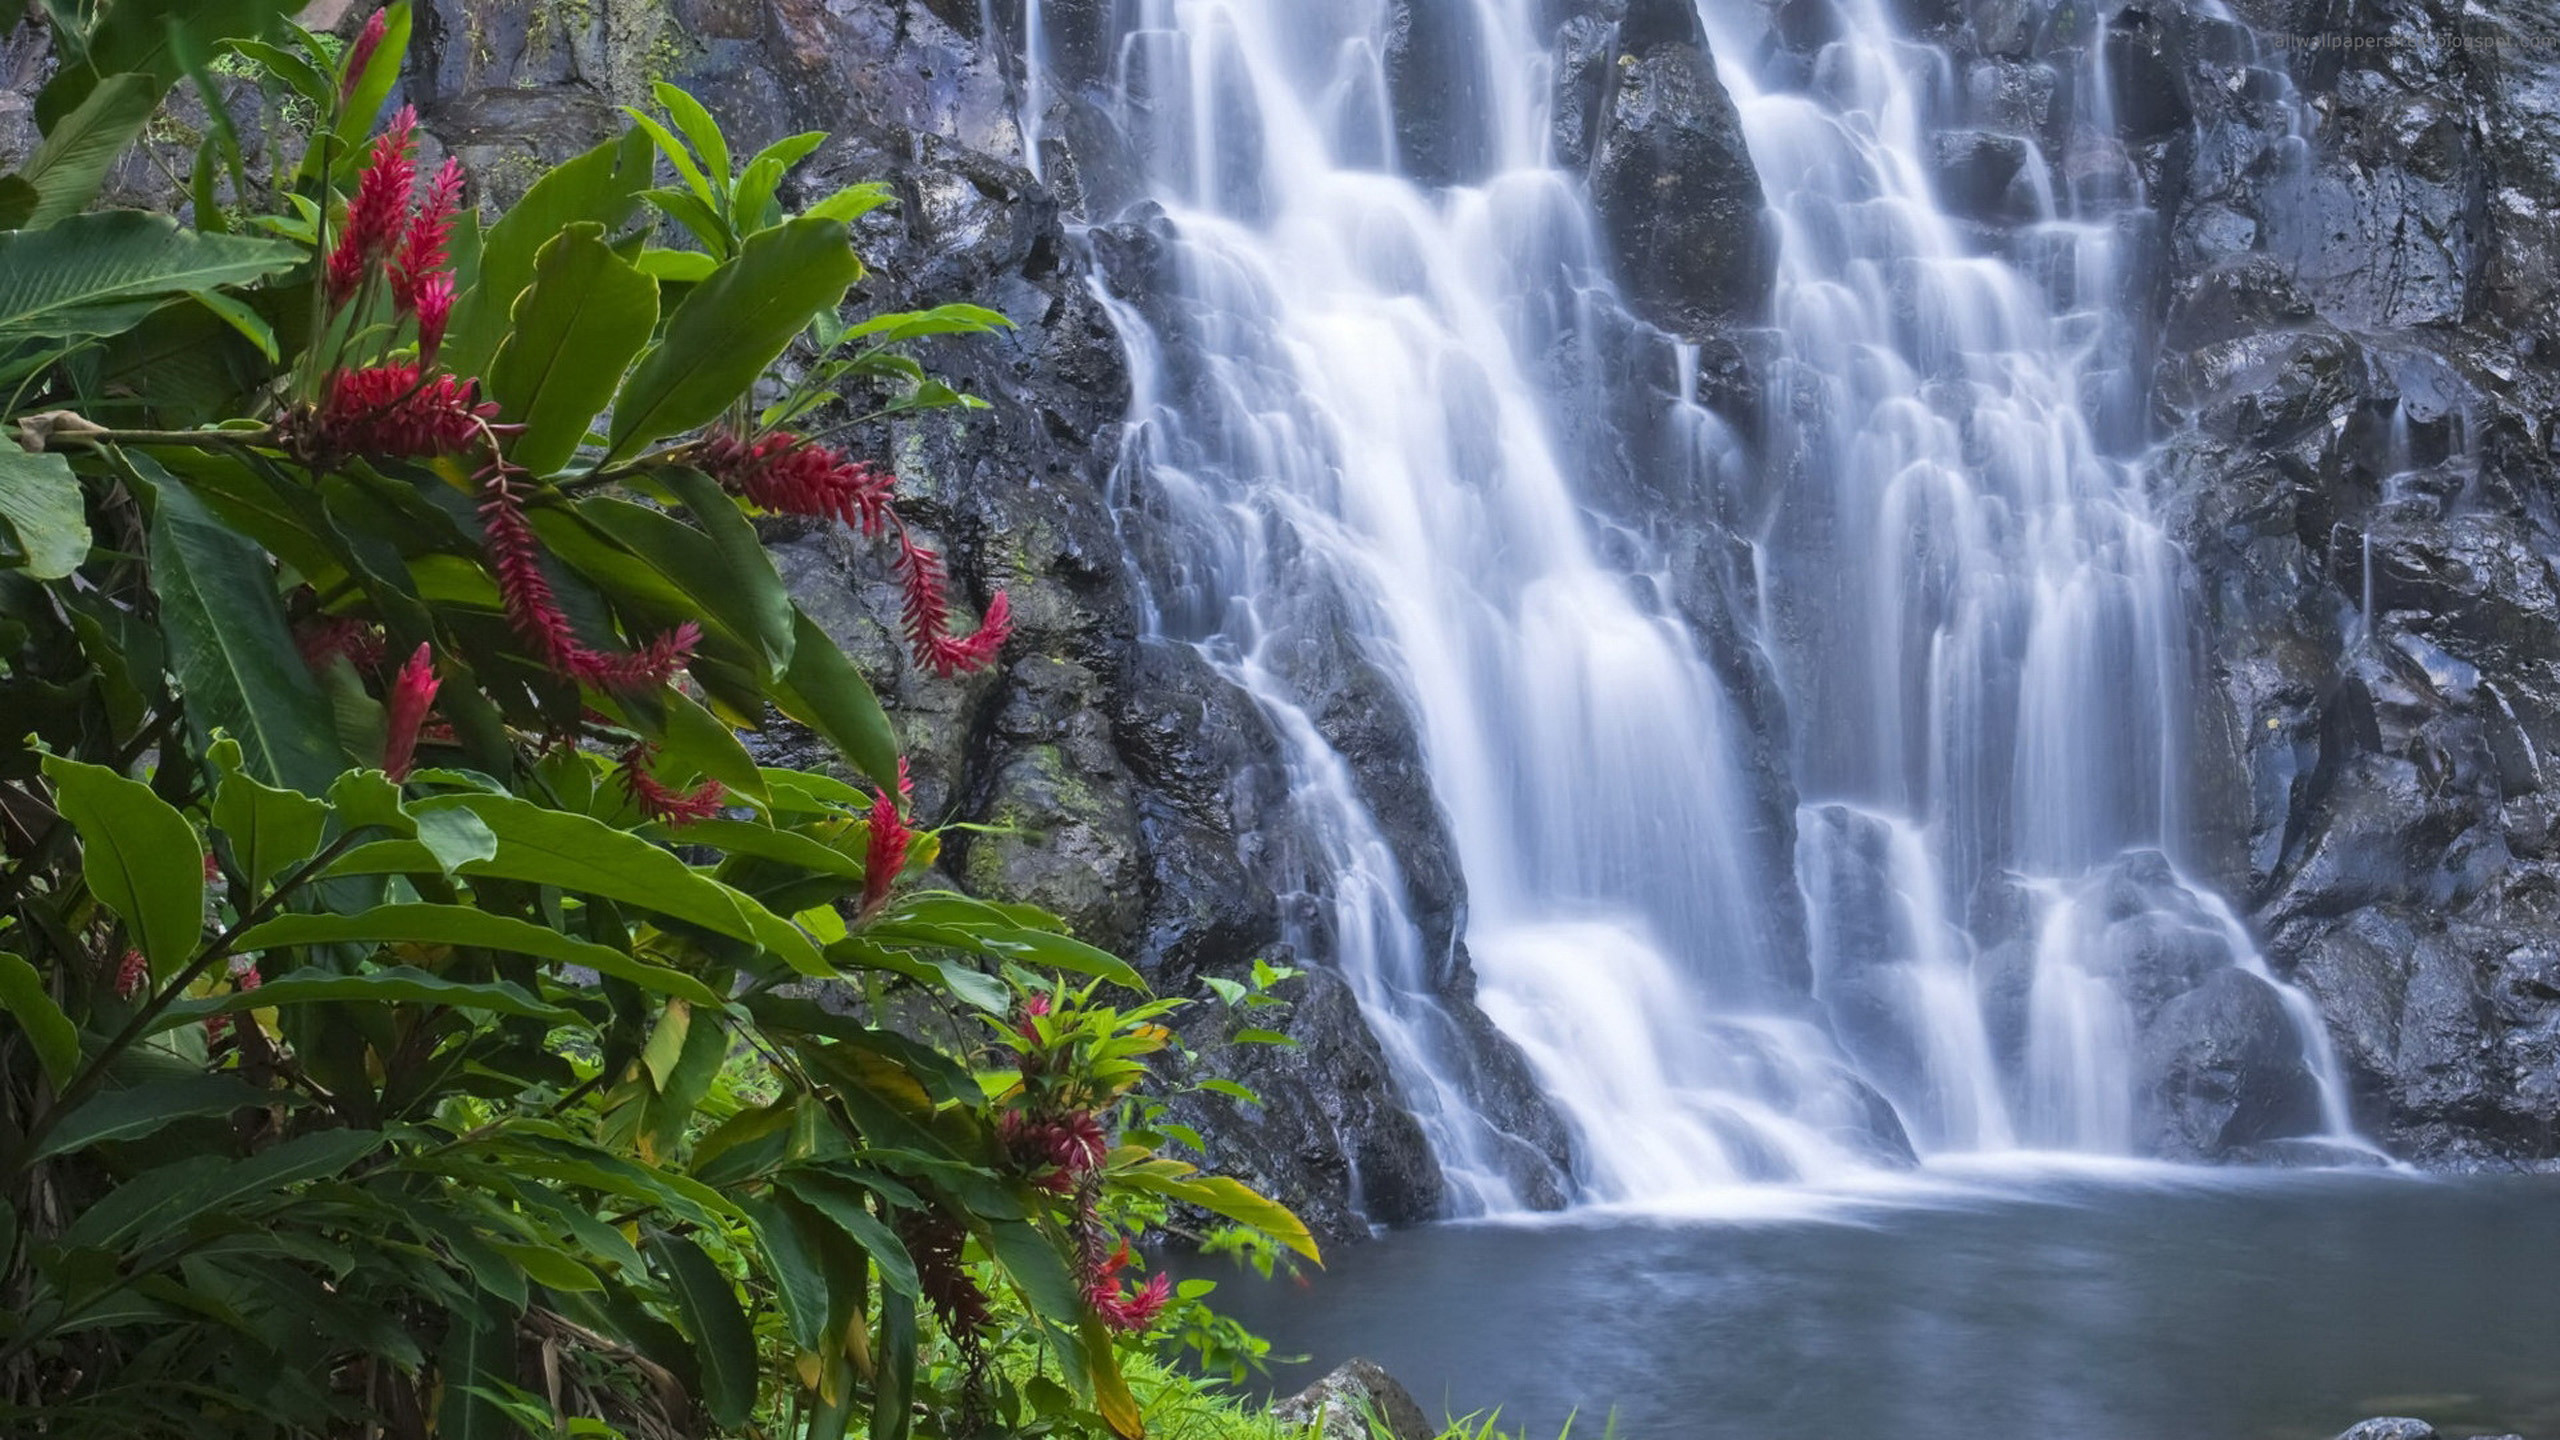 Images of Waterfalls Flowers – Yahoo Image Search Results